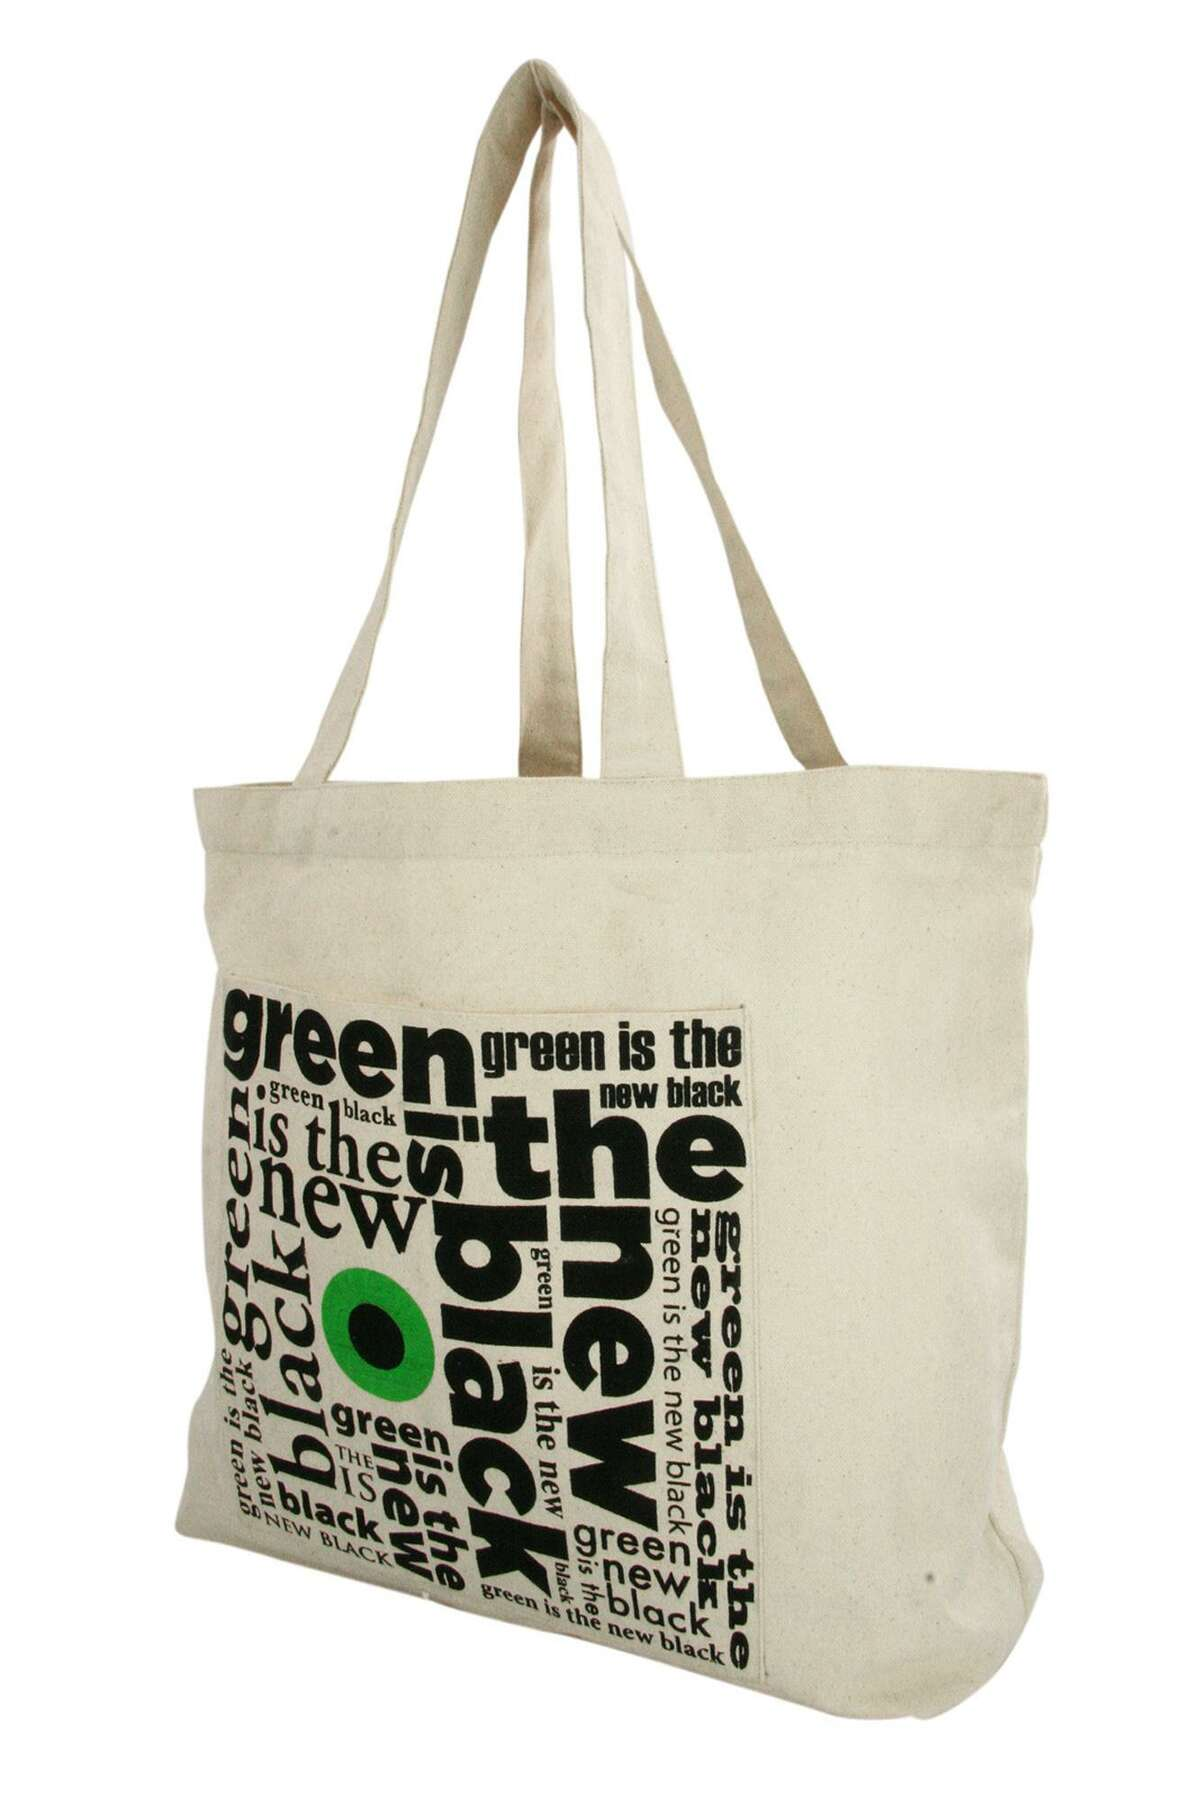 This product image released by The Rainforest Site shows The New Black Is Green tote made of 100 percent organic cotton.